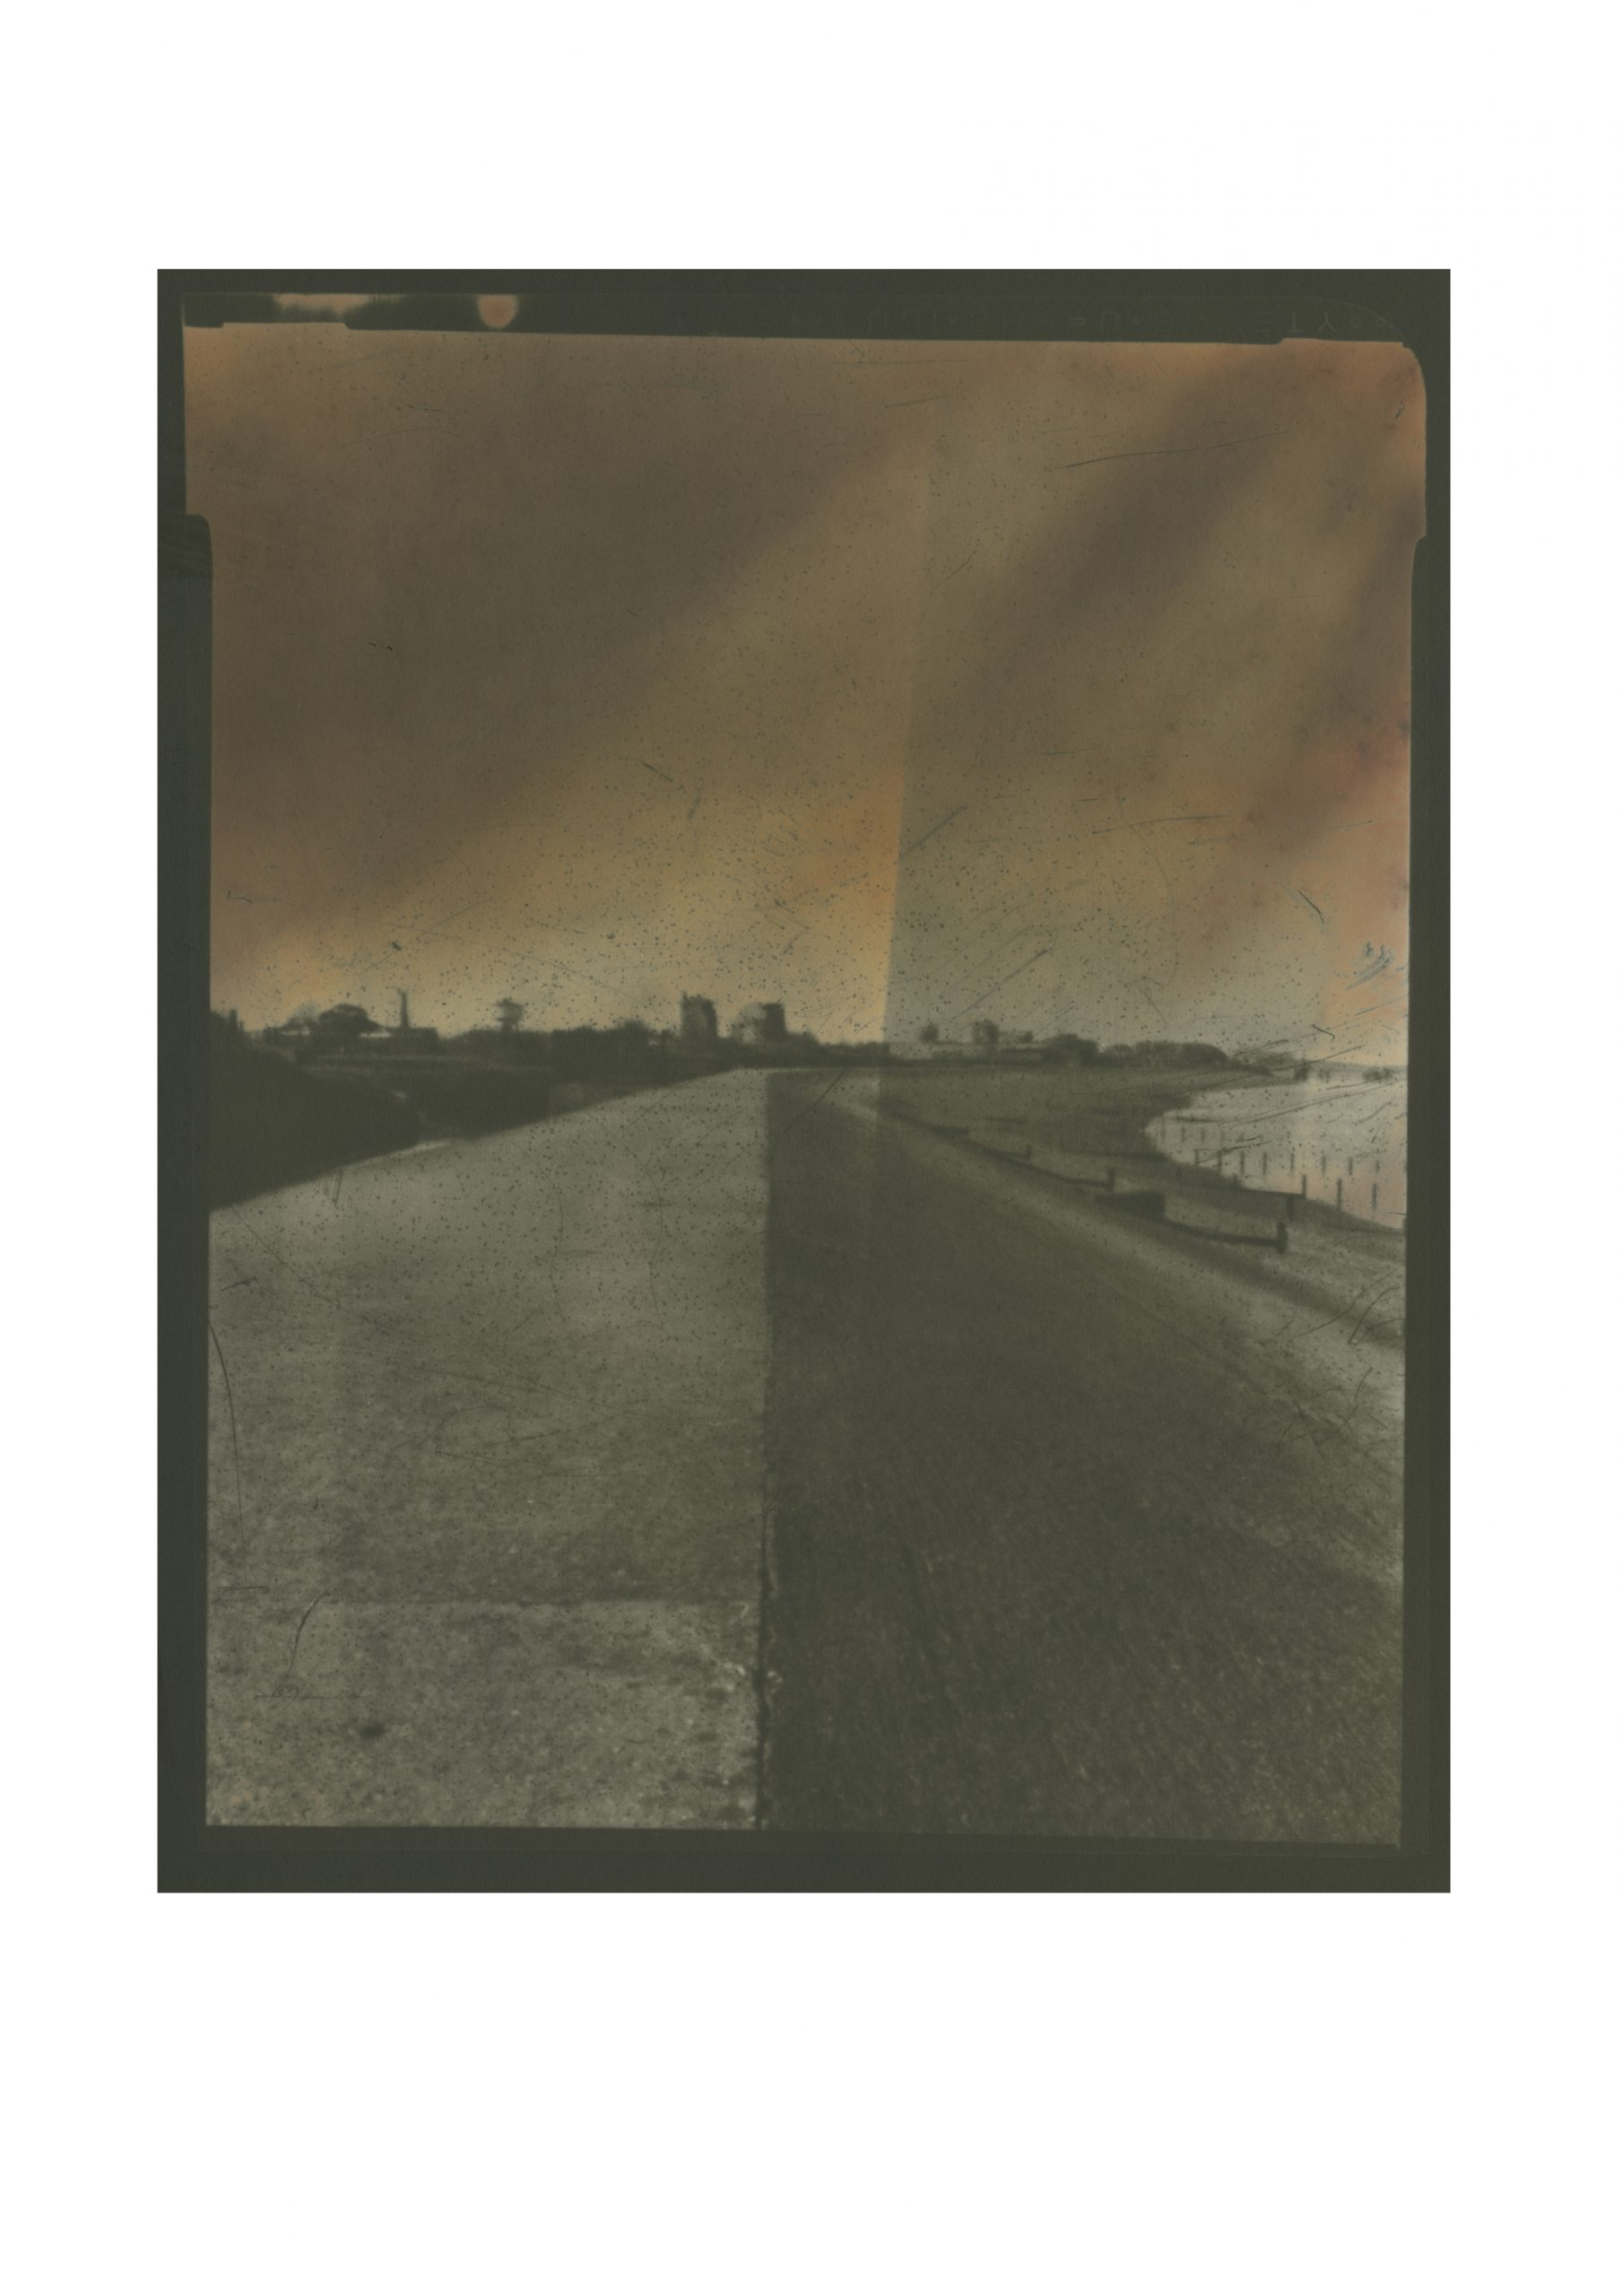 Brooding dark image with hint of orange skies defences leading to a vanishing point